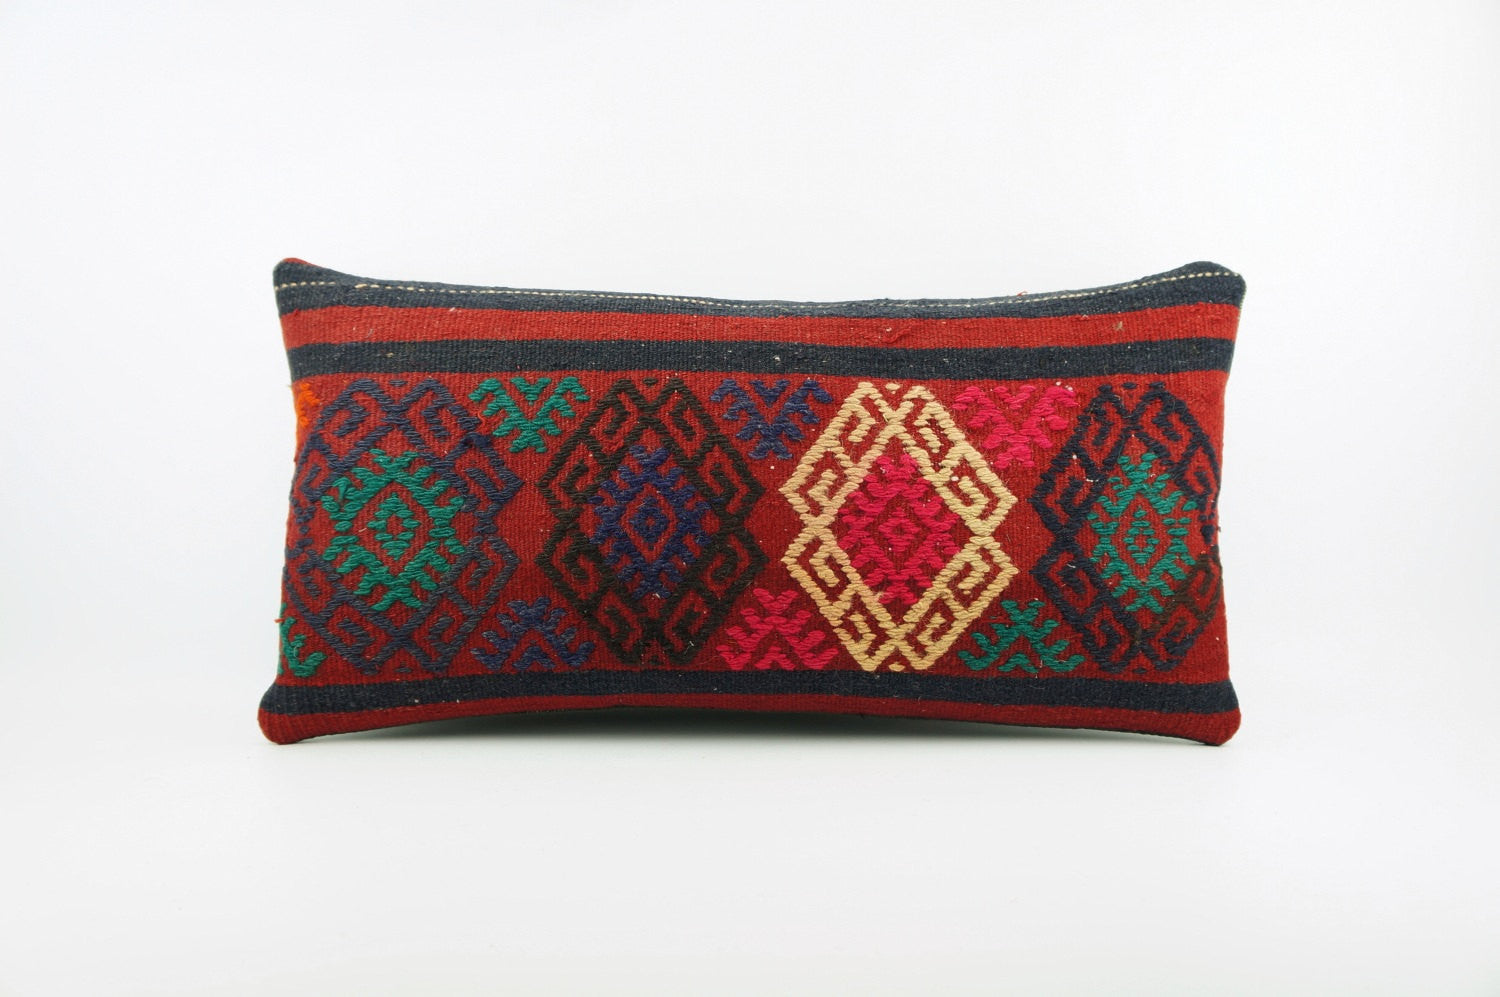 12x24  Ethnic decorative pillow cover, multi color, Bohemian pillow case, Modern home decor  geometric handwoven pillow ,1825